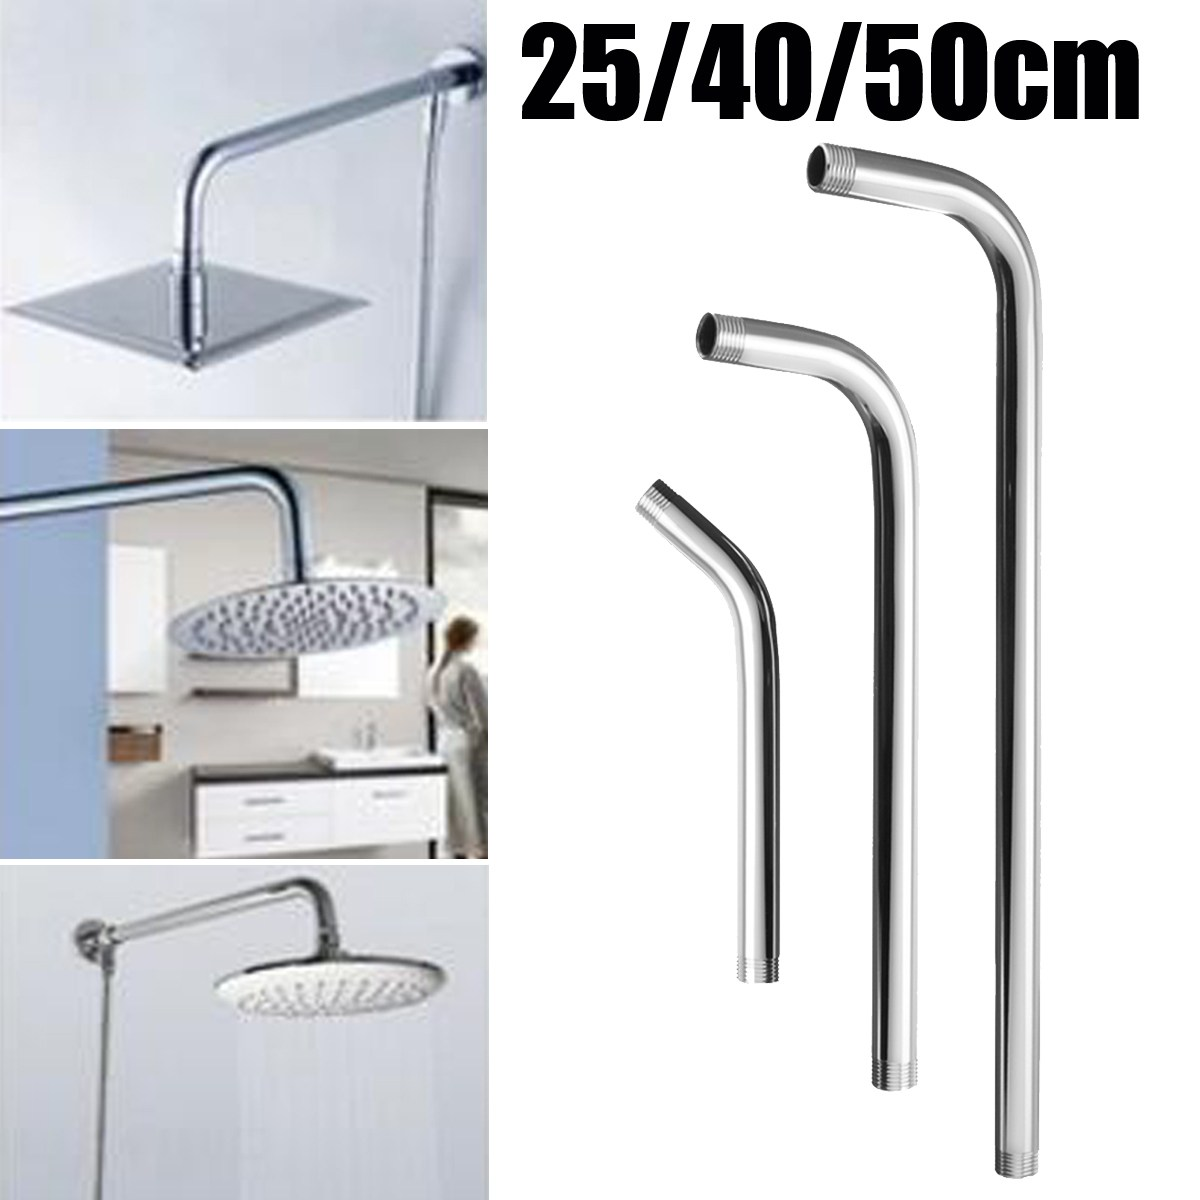 New 25cm 40cm 50cm Wall Mounted Shower Extension Arm Angled Extra Pipe For Rain Shower Head Bathroom Tools Accessories